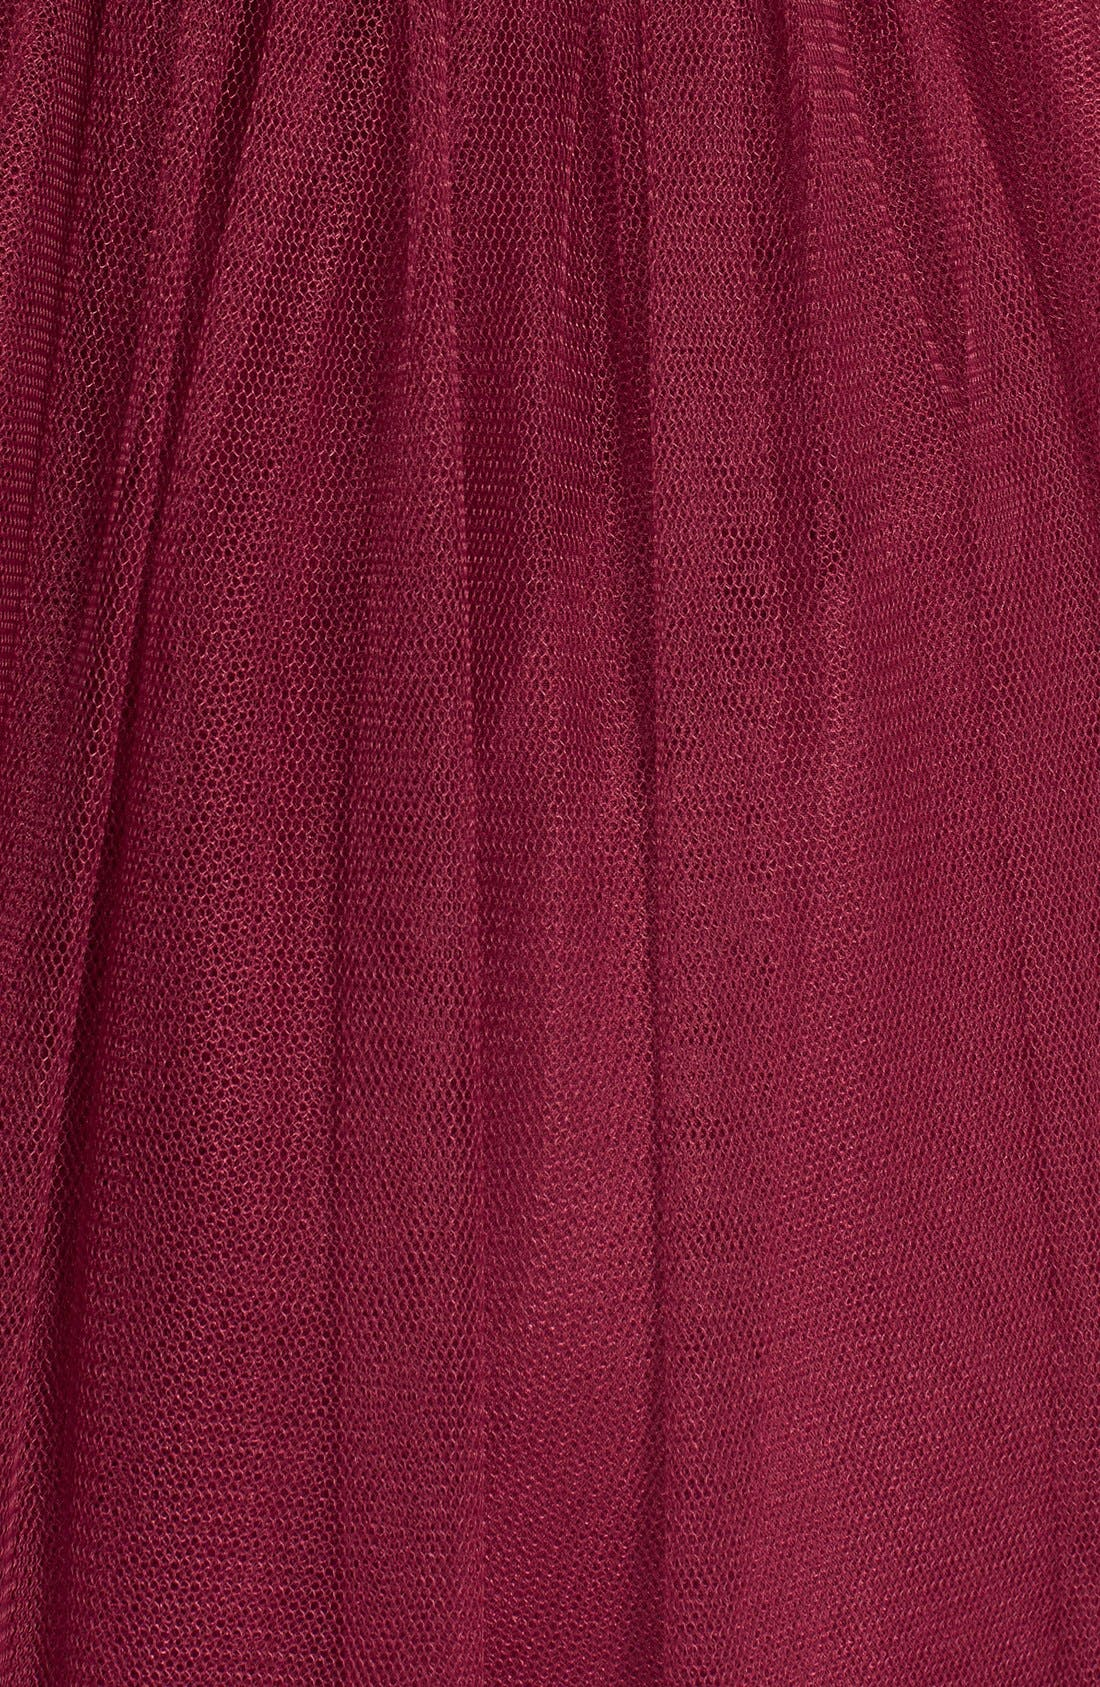 Annabelle Convertible Tulle Column Dress,                             Alternate thumbnail 61, color,